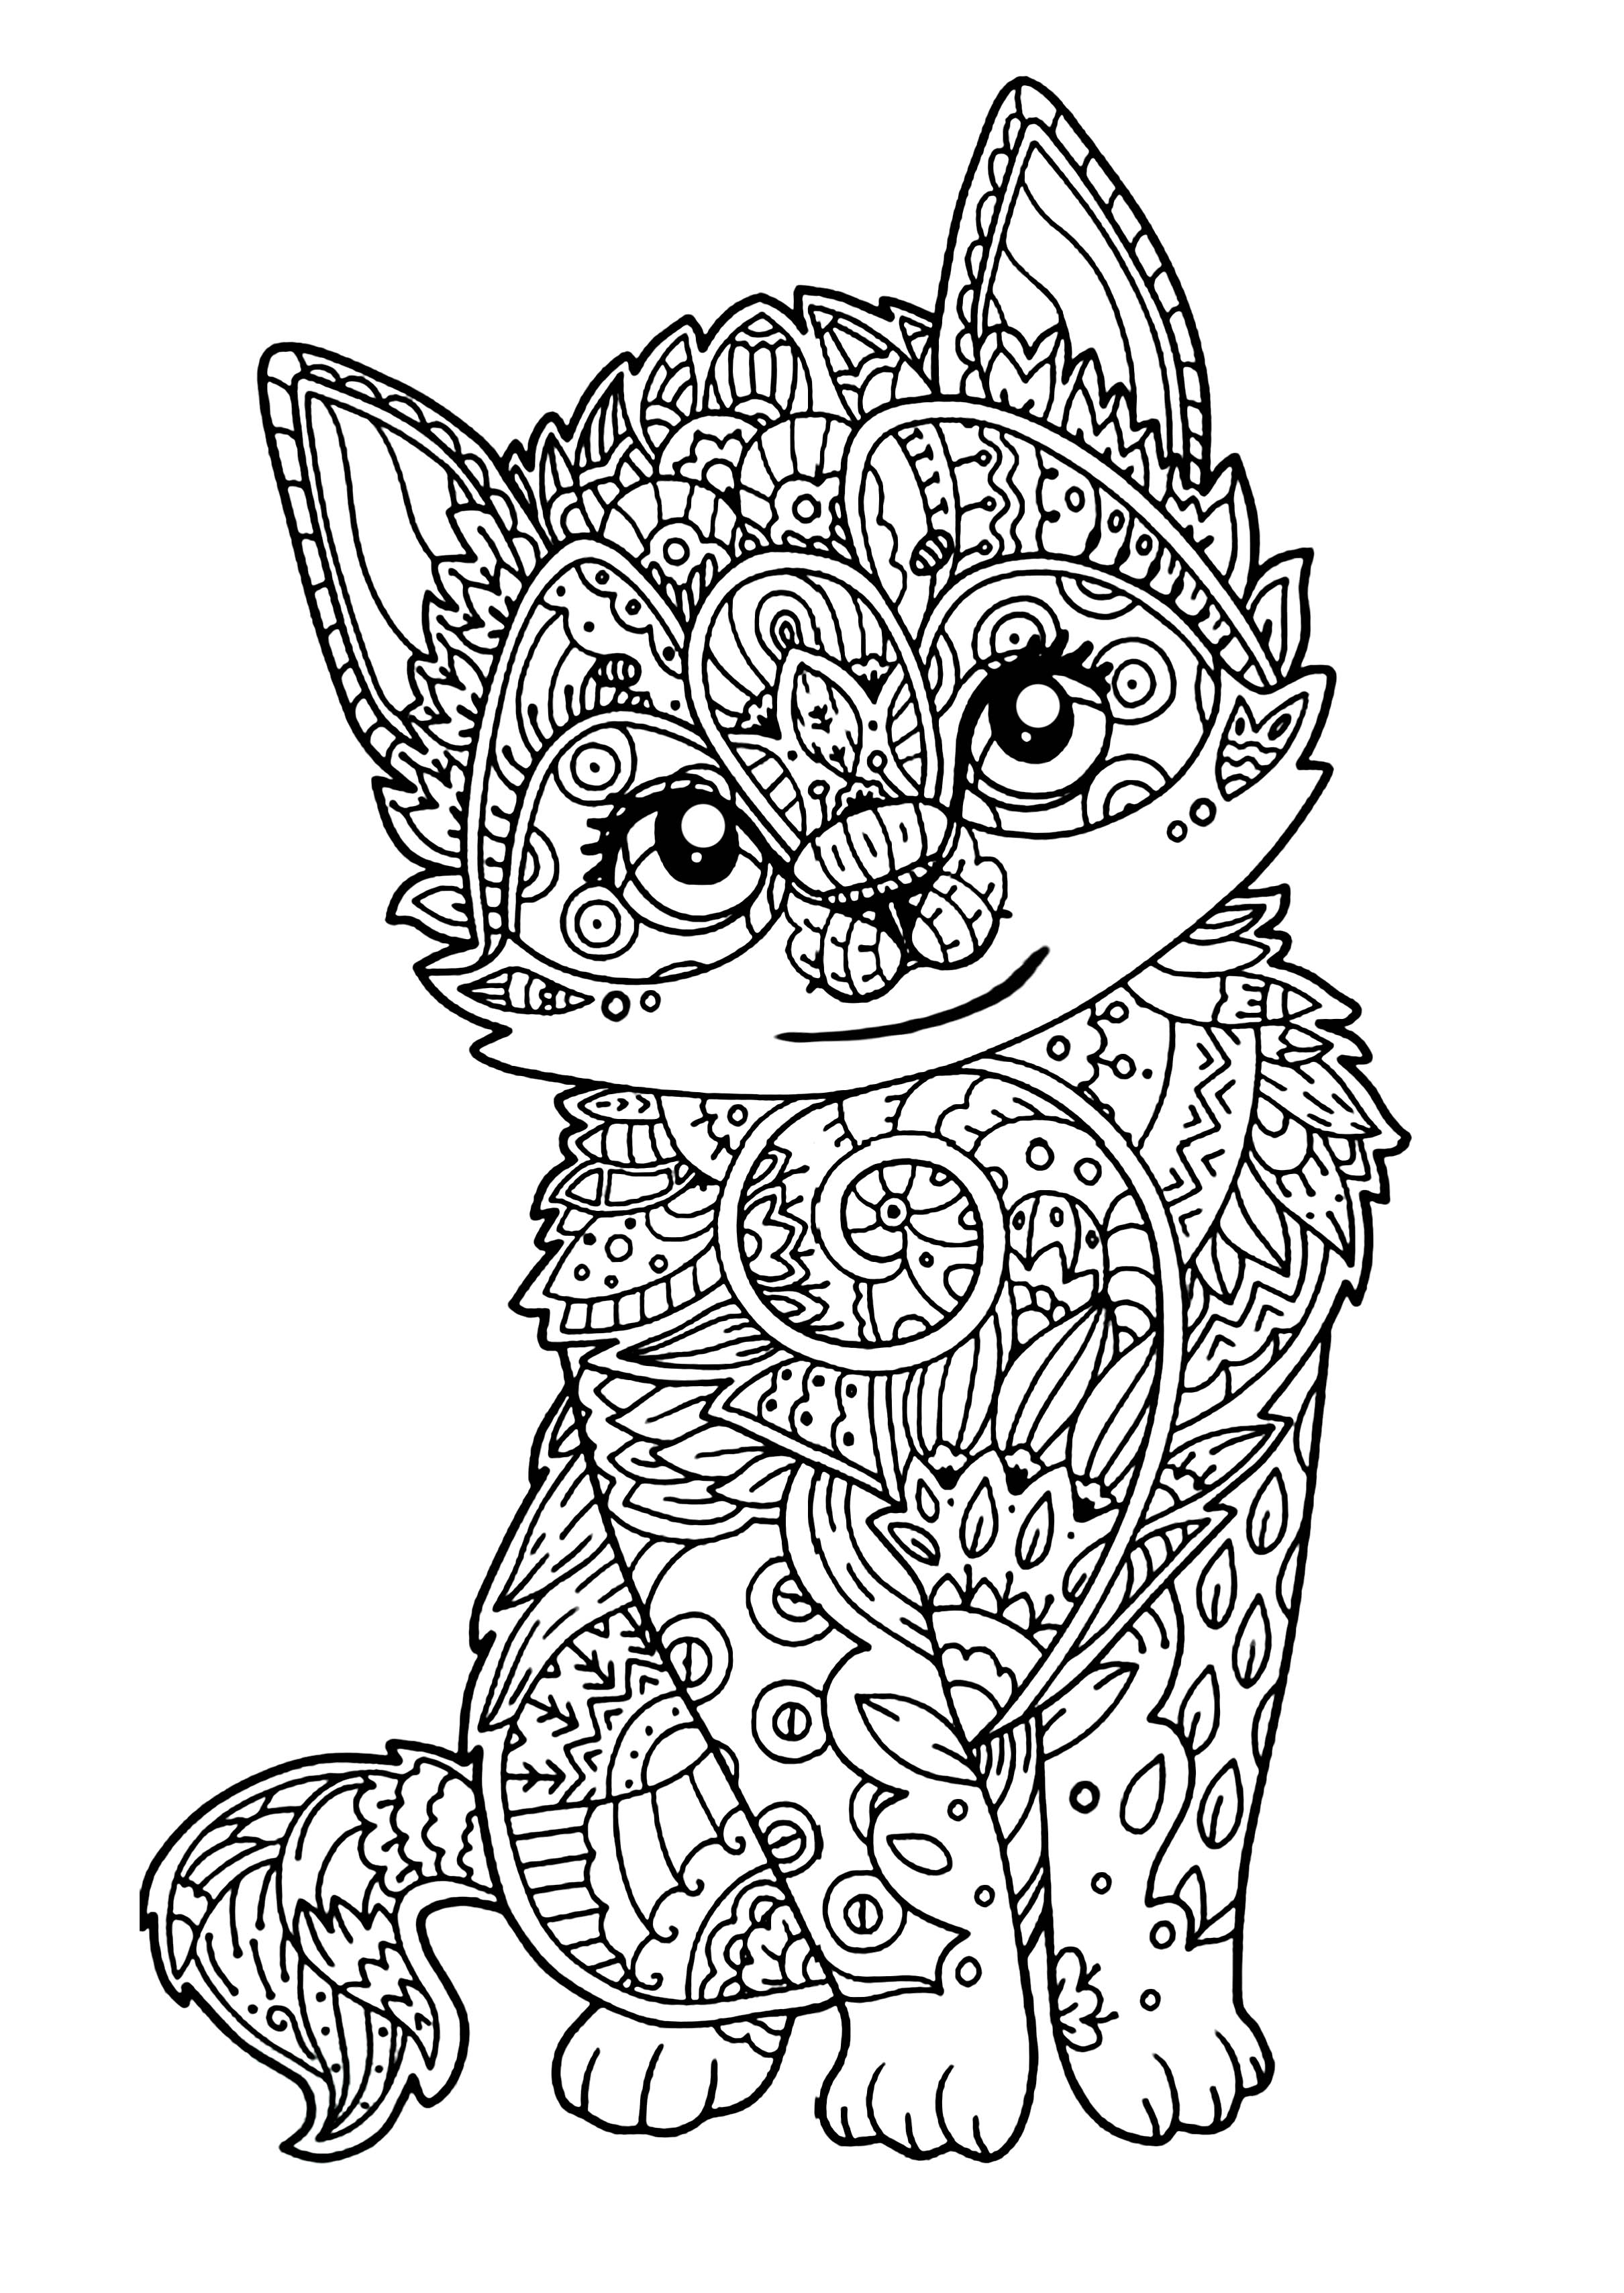 cute kitten cats coloring pages for adults justcolor - Cute Kitten Coloring Pages